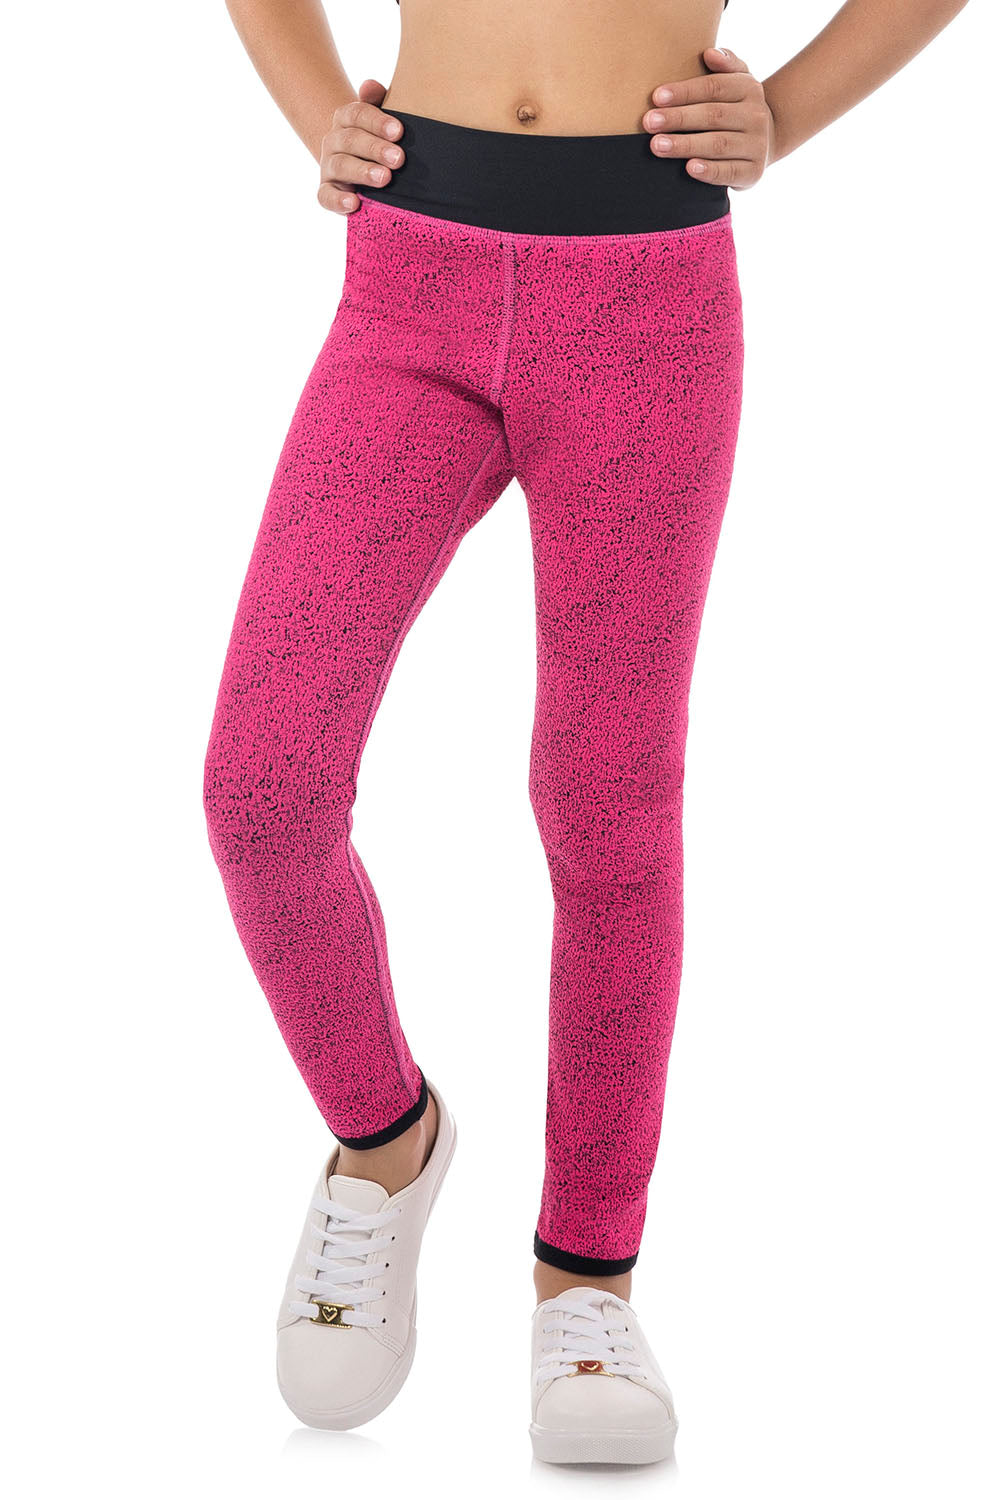 Surface Reversible Kids Legging 2